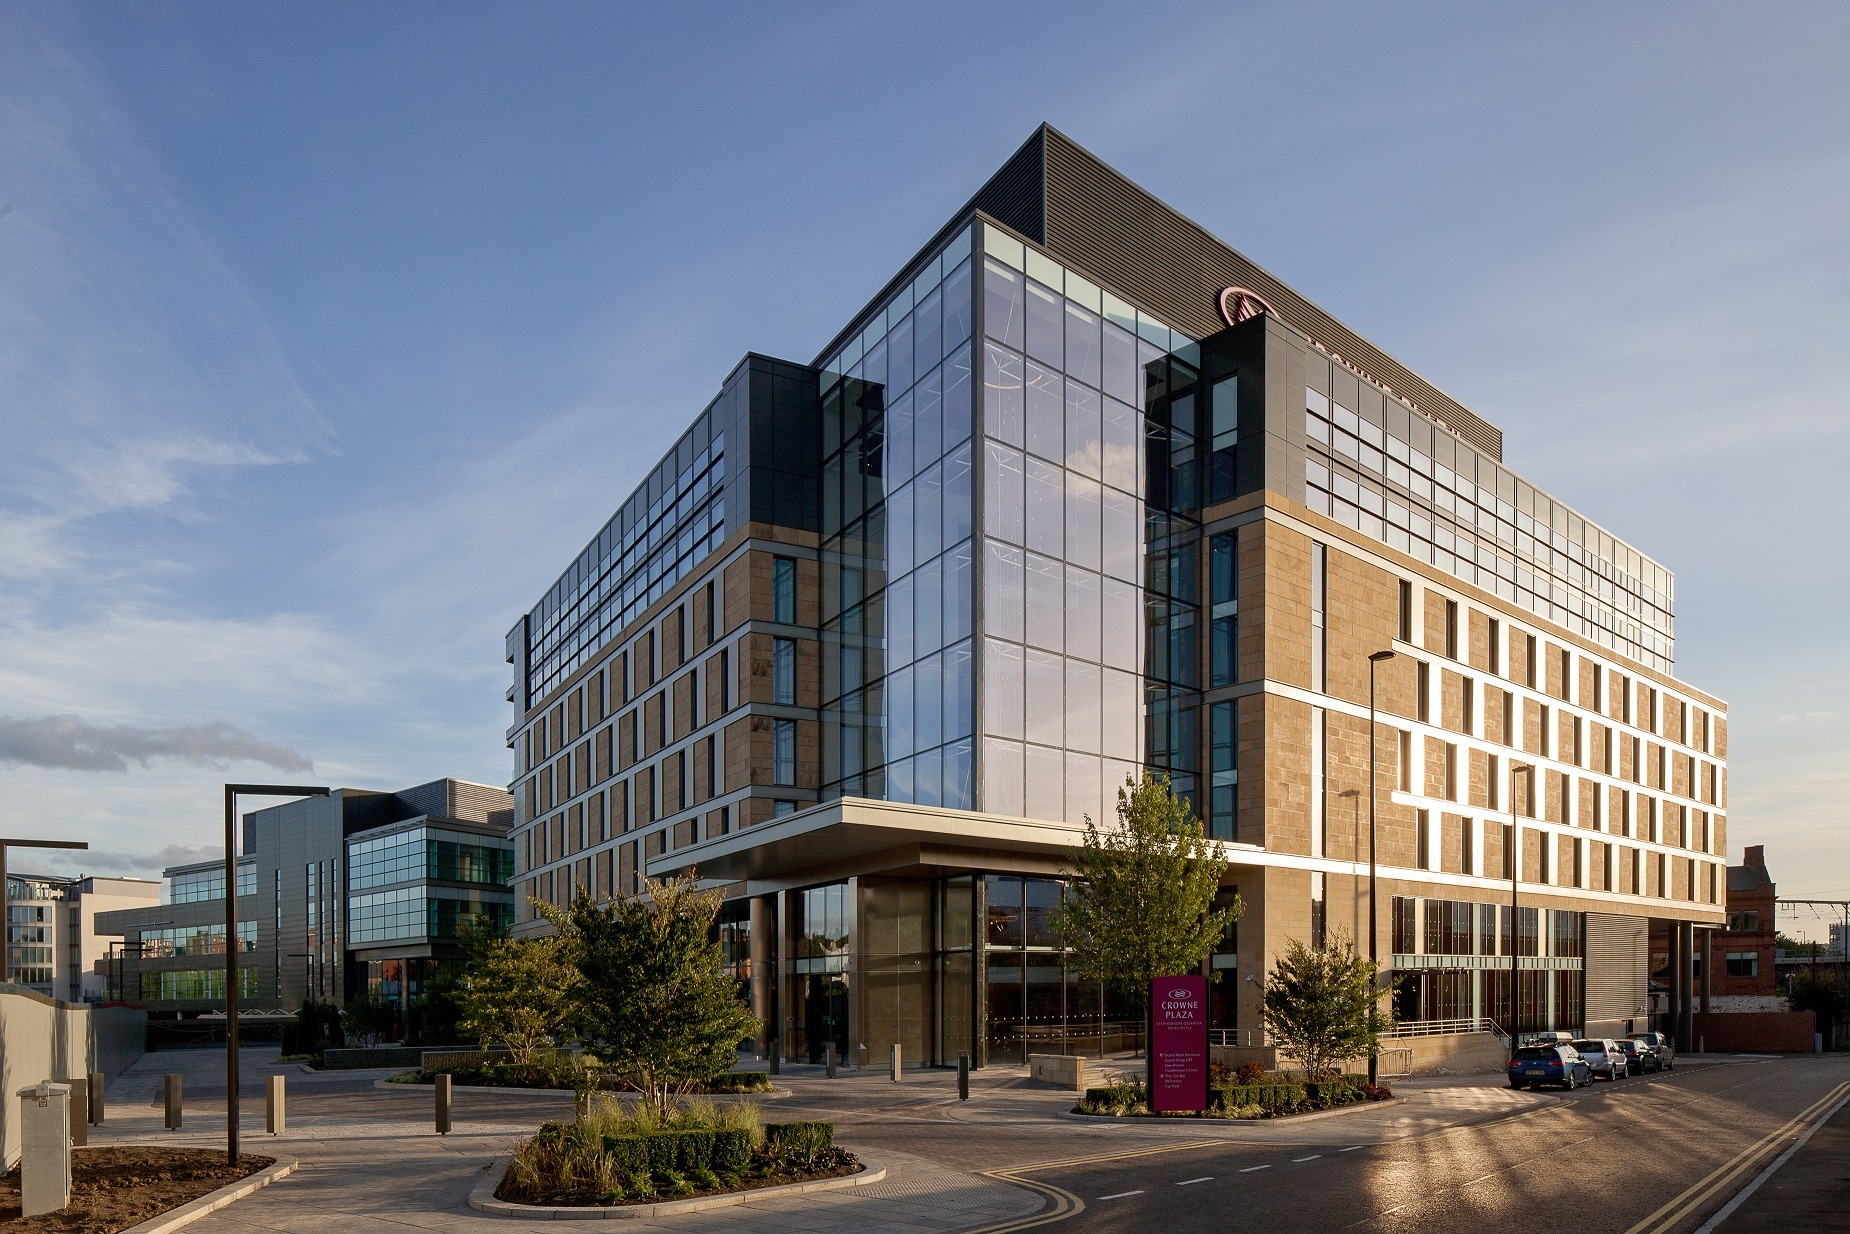 Crowne Plaza Newcastle signing cements strong first quarter for Interstate